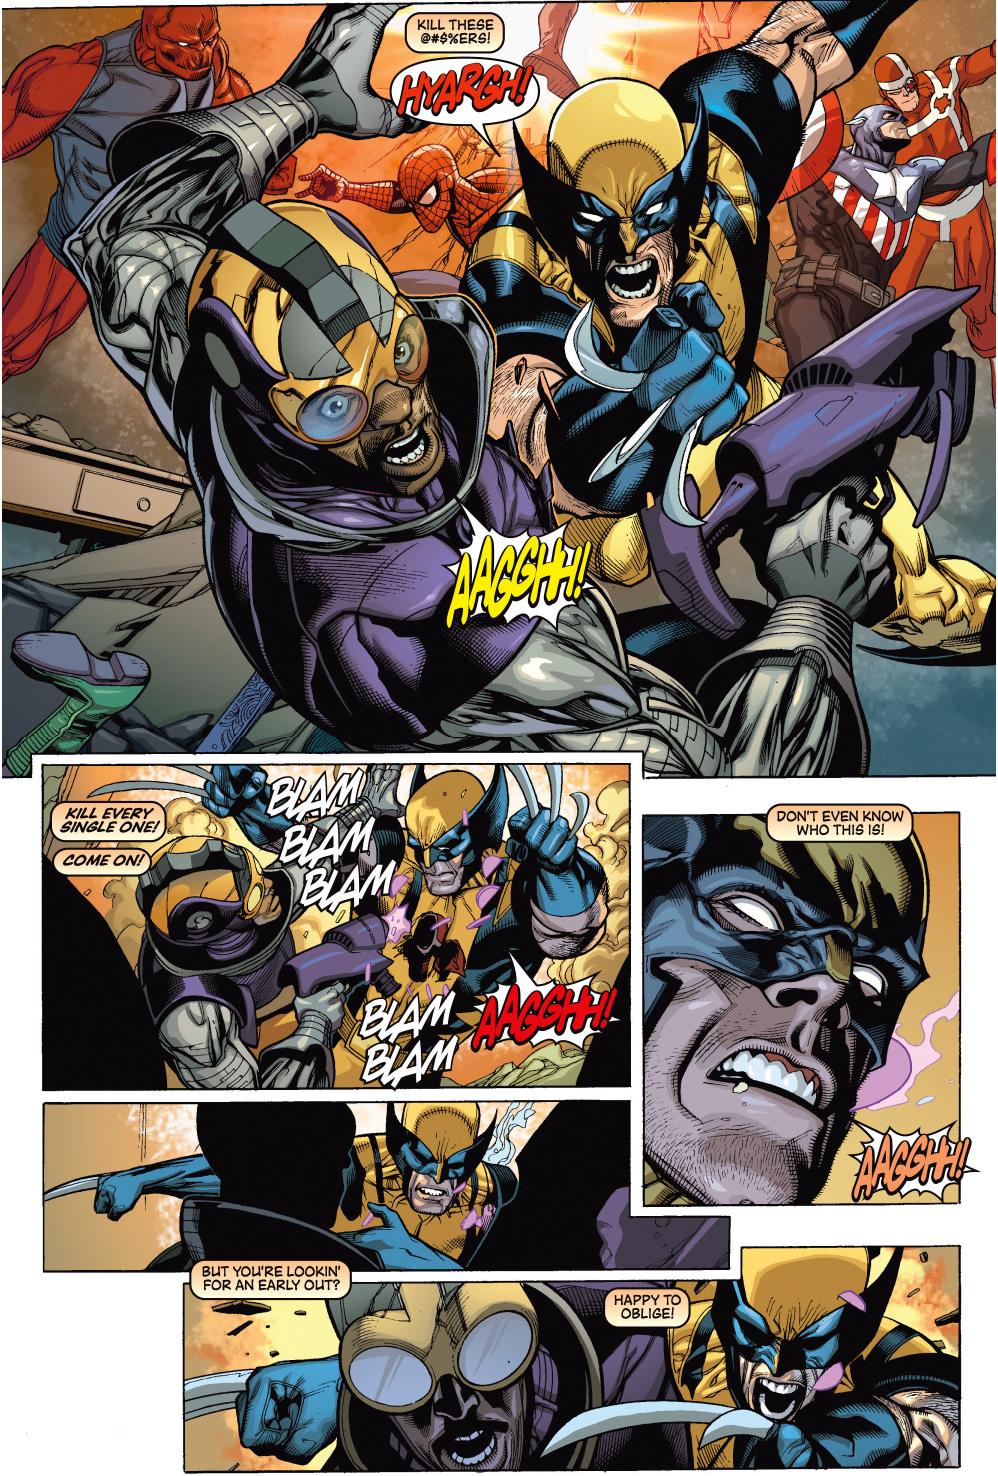 wolverine's thoughts during a fight